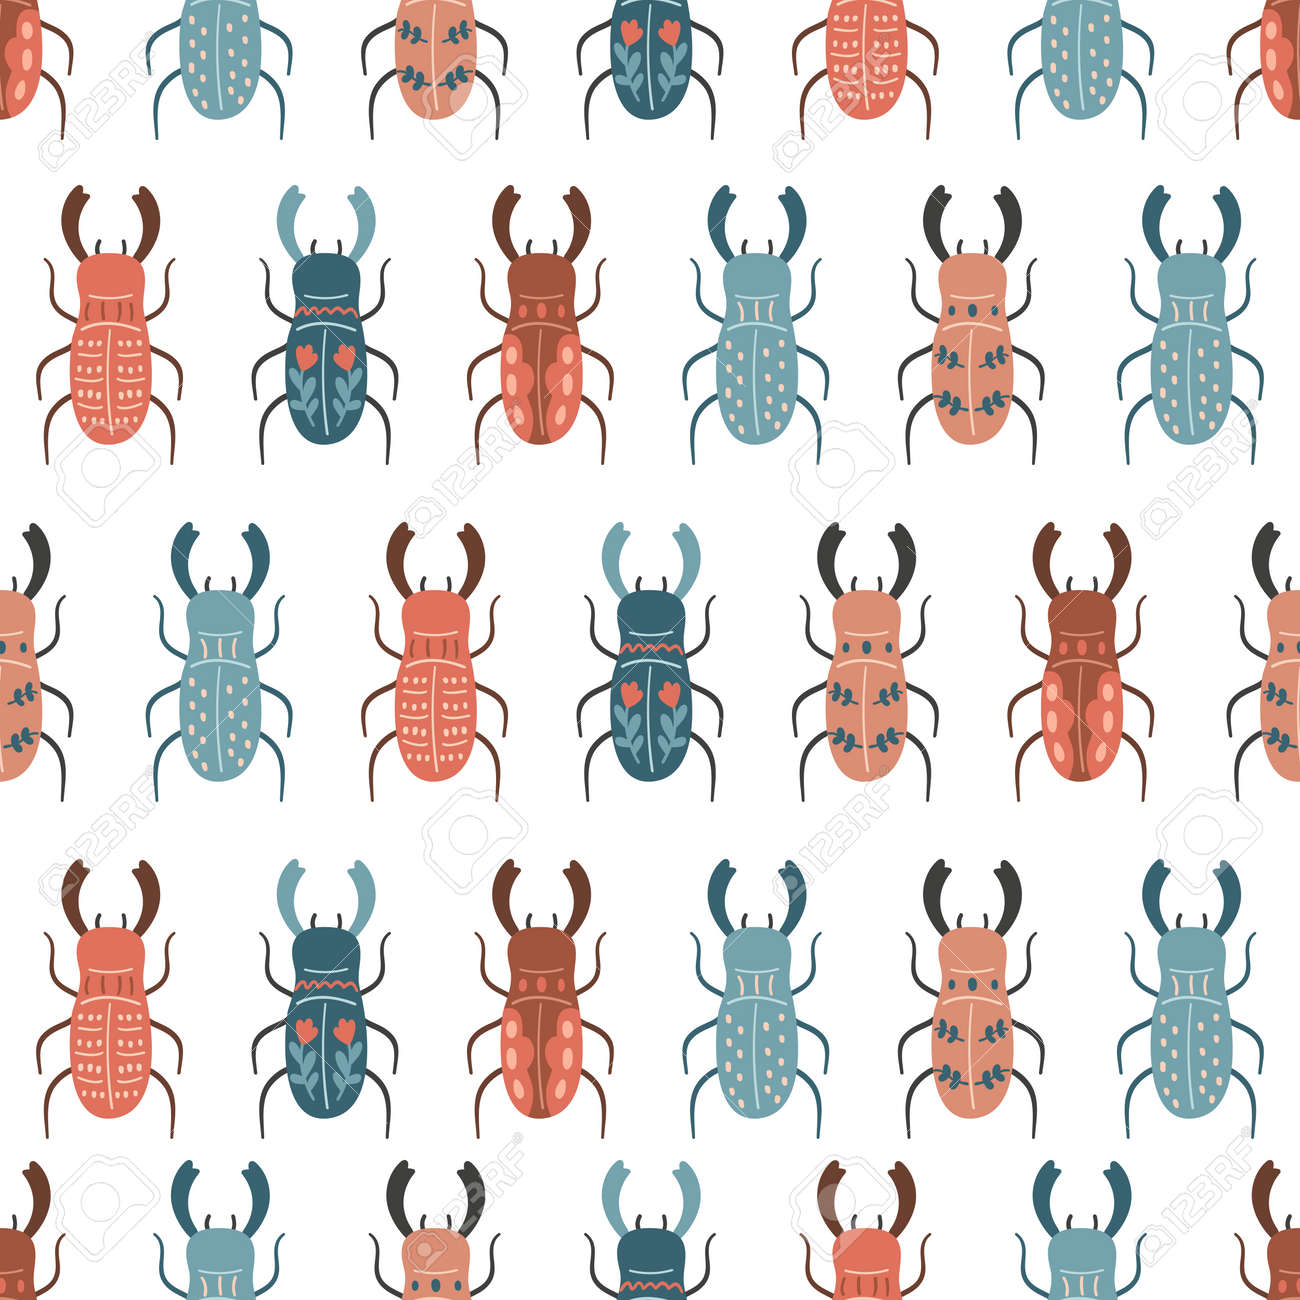 Vector seamless pattern with stylized stag beetles in folk style. Hand drawn insects on white background. Doodle illustration. - 166612302